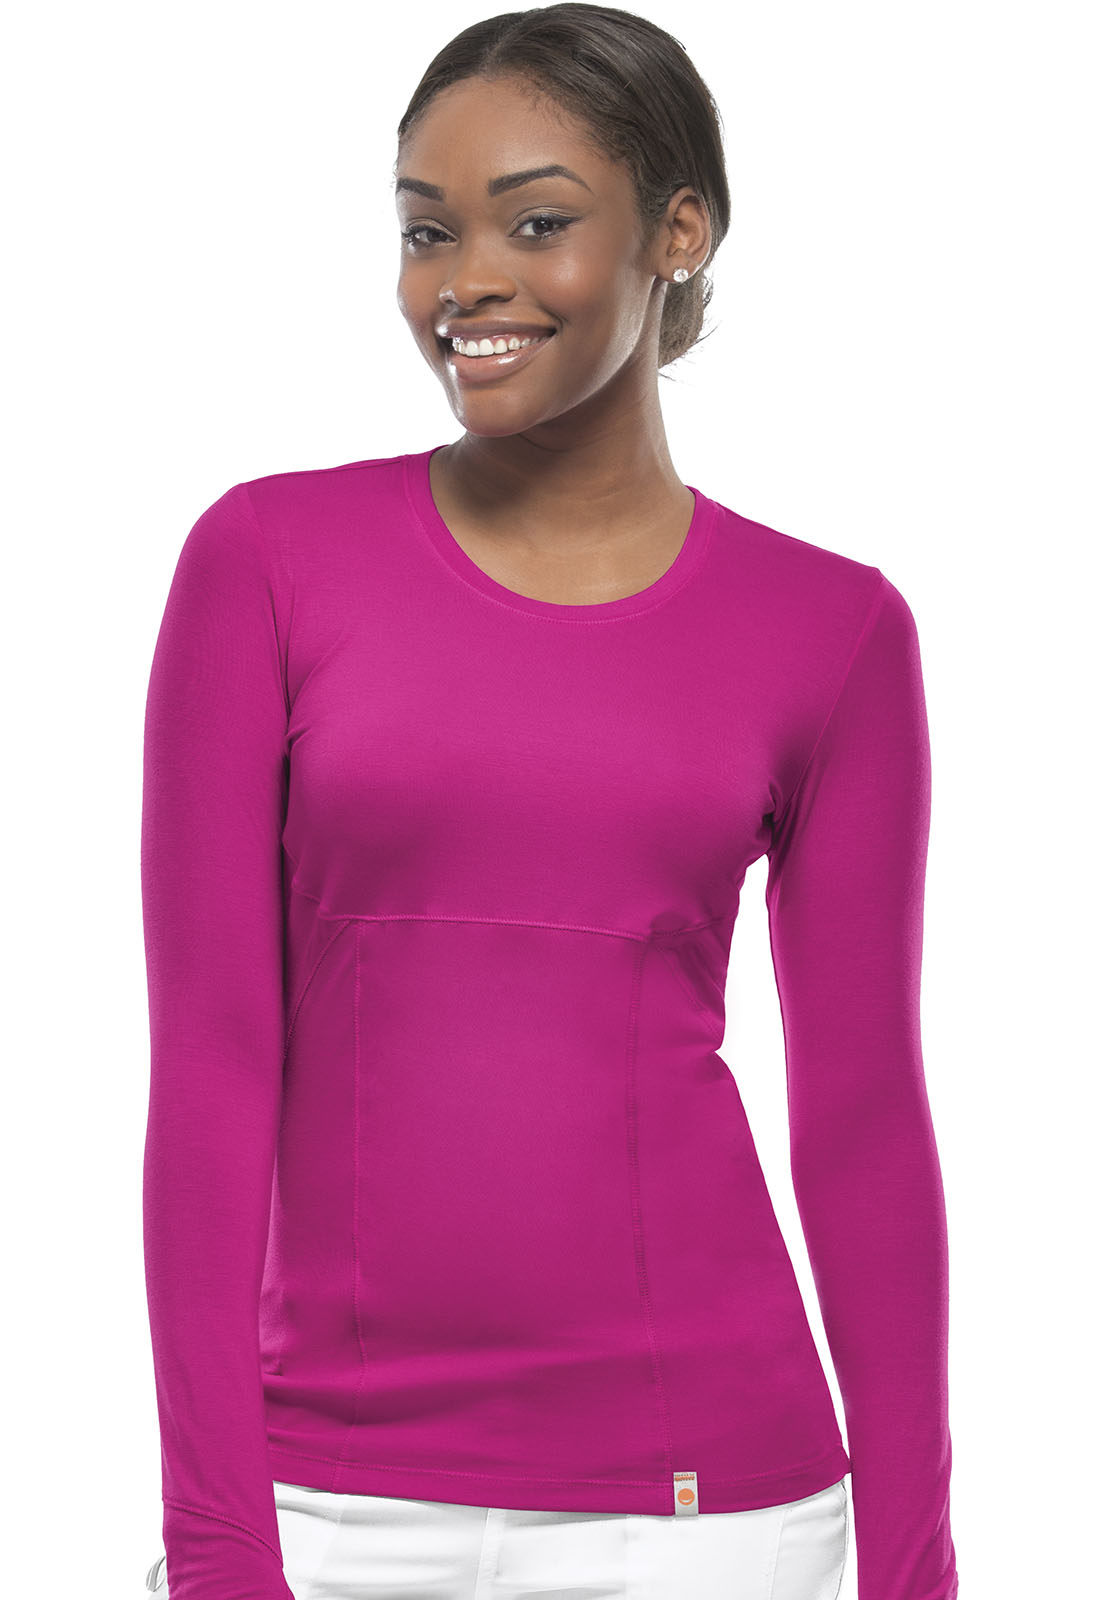 396257565d6 Bliss Long Sleeve Underscrub Knit Tee in Shocking Pink (Antimicrobial)